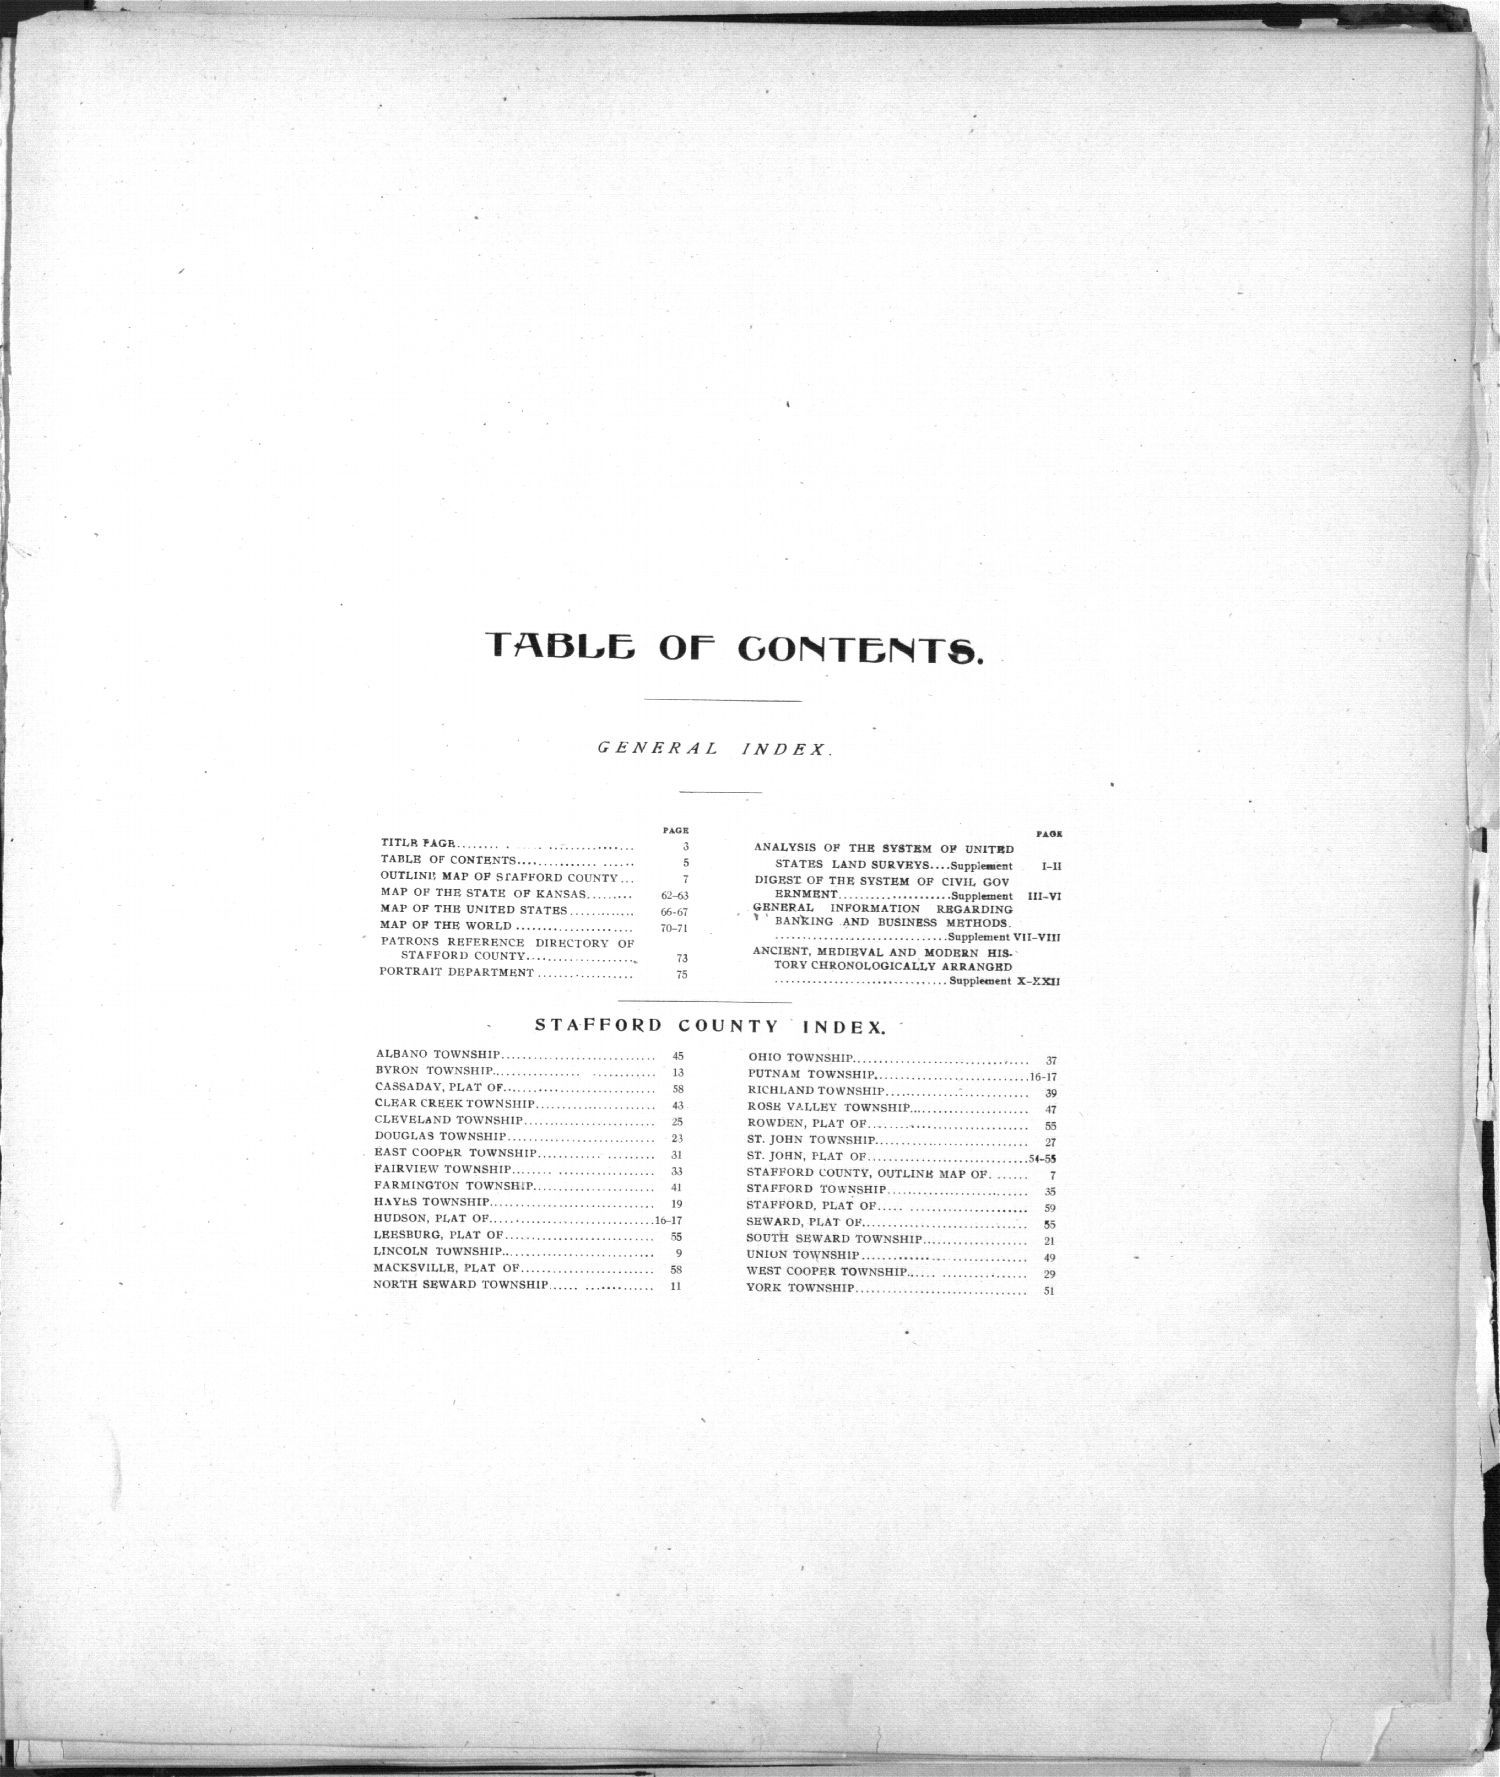 Standard atlas of Stafford County, Kansas - Table of Contents